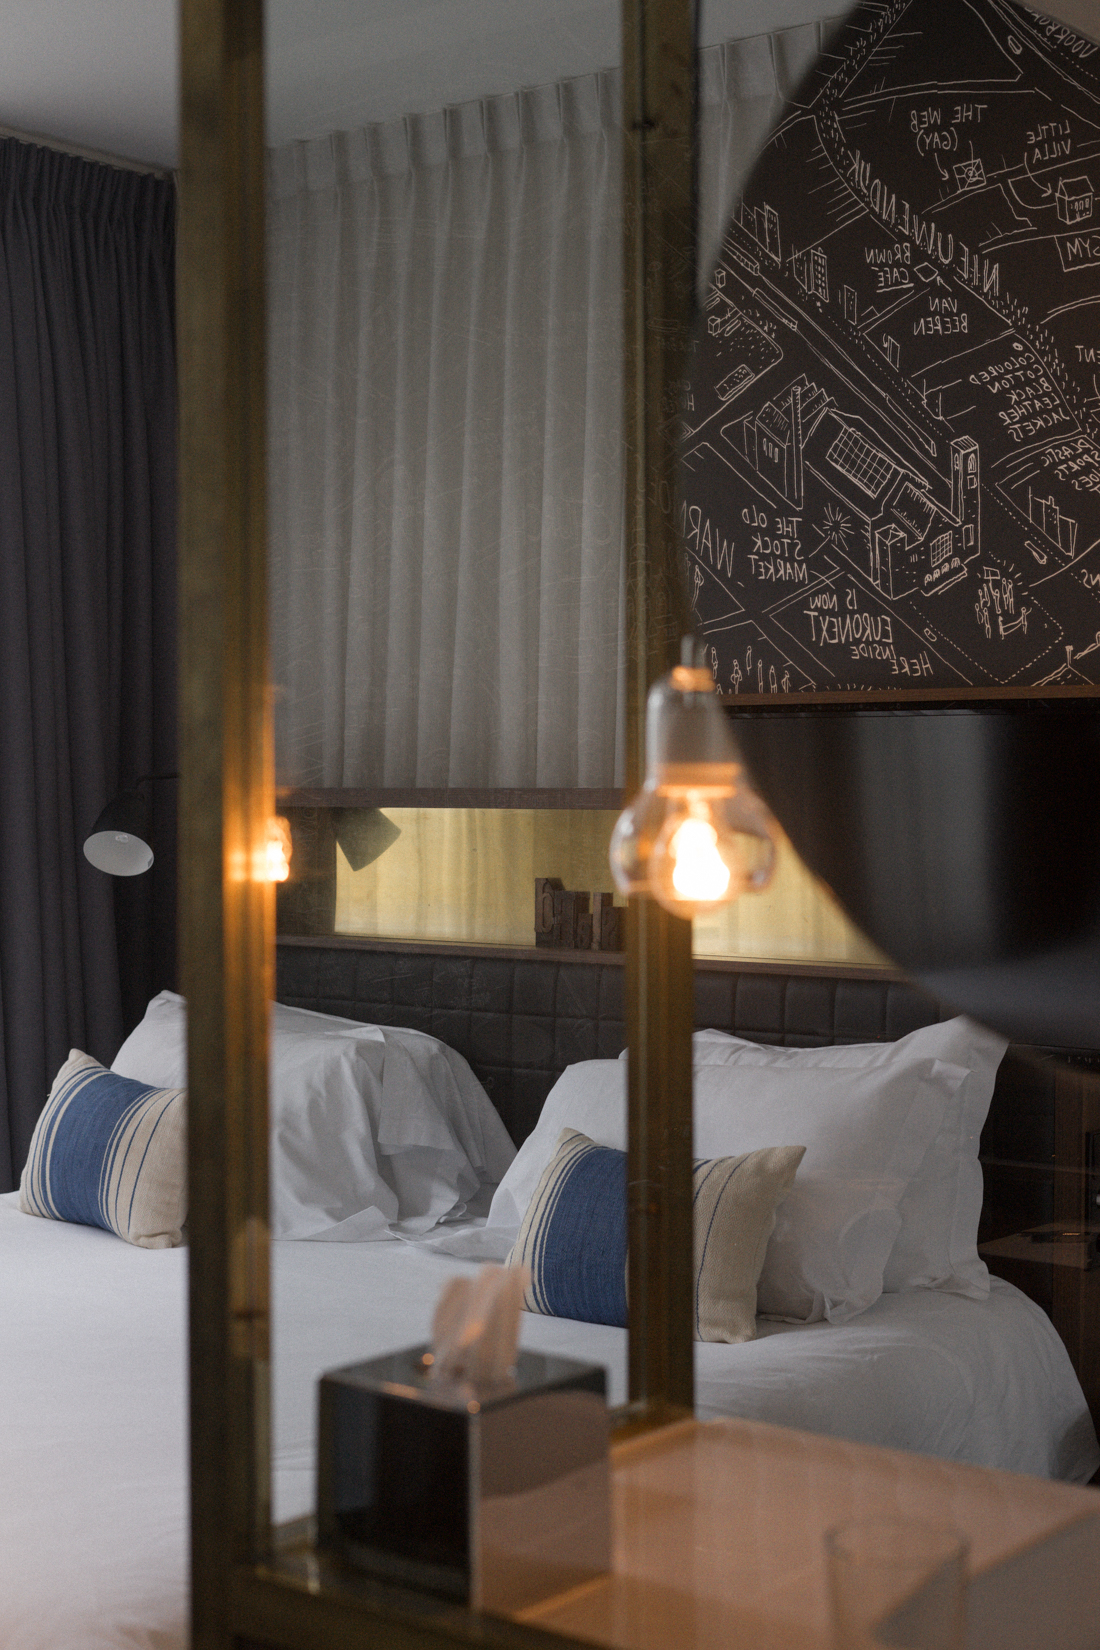 The Pressroom Amsterdam Ink Hotel Amsterdam Review - Tao Of Sophia